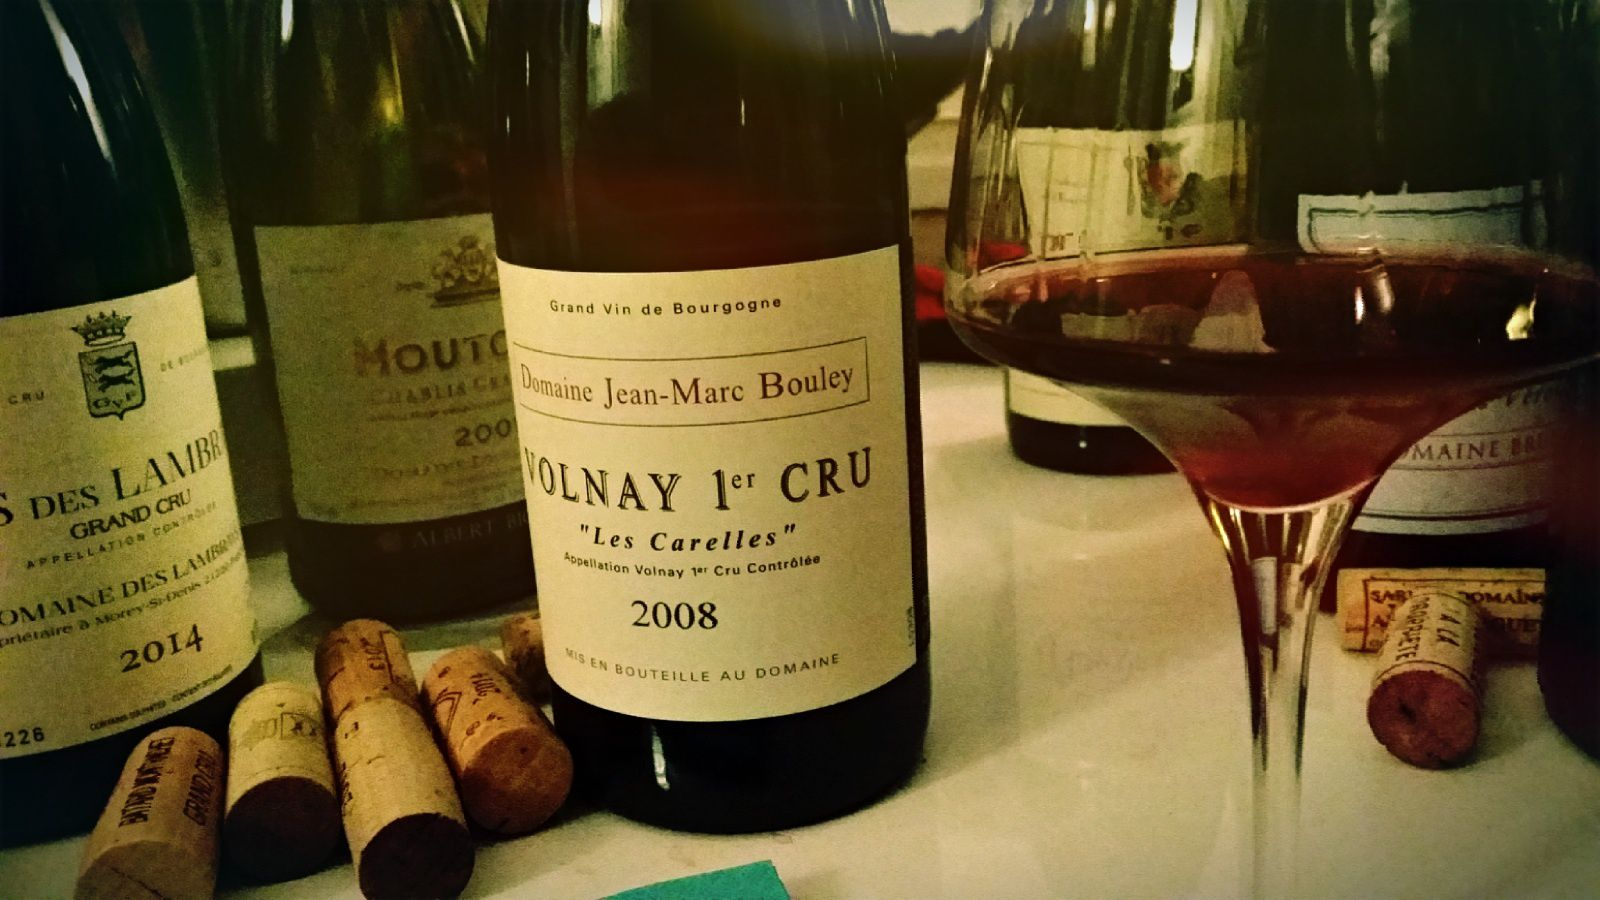 Volnay 1er cru 'les carelles', Thomas Bouley